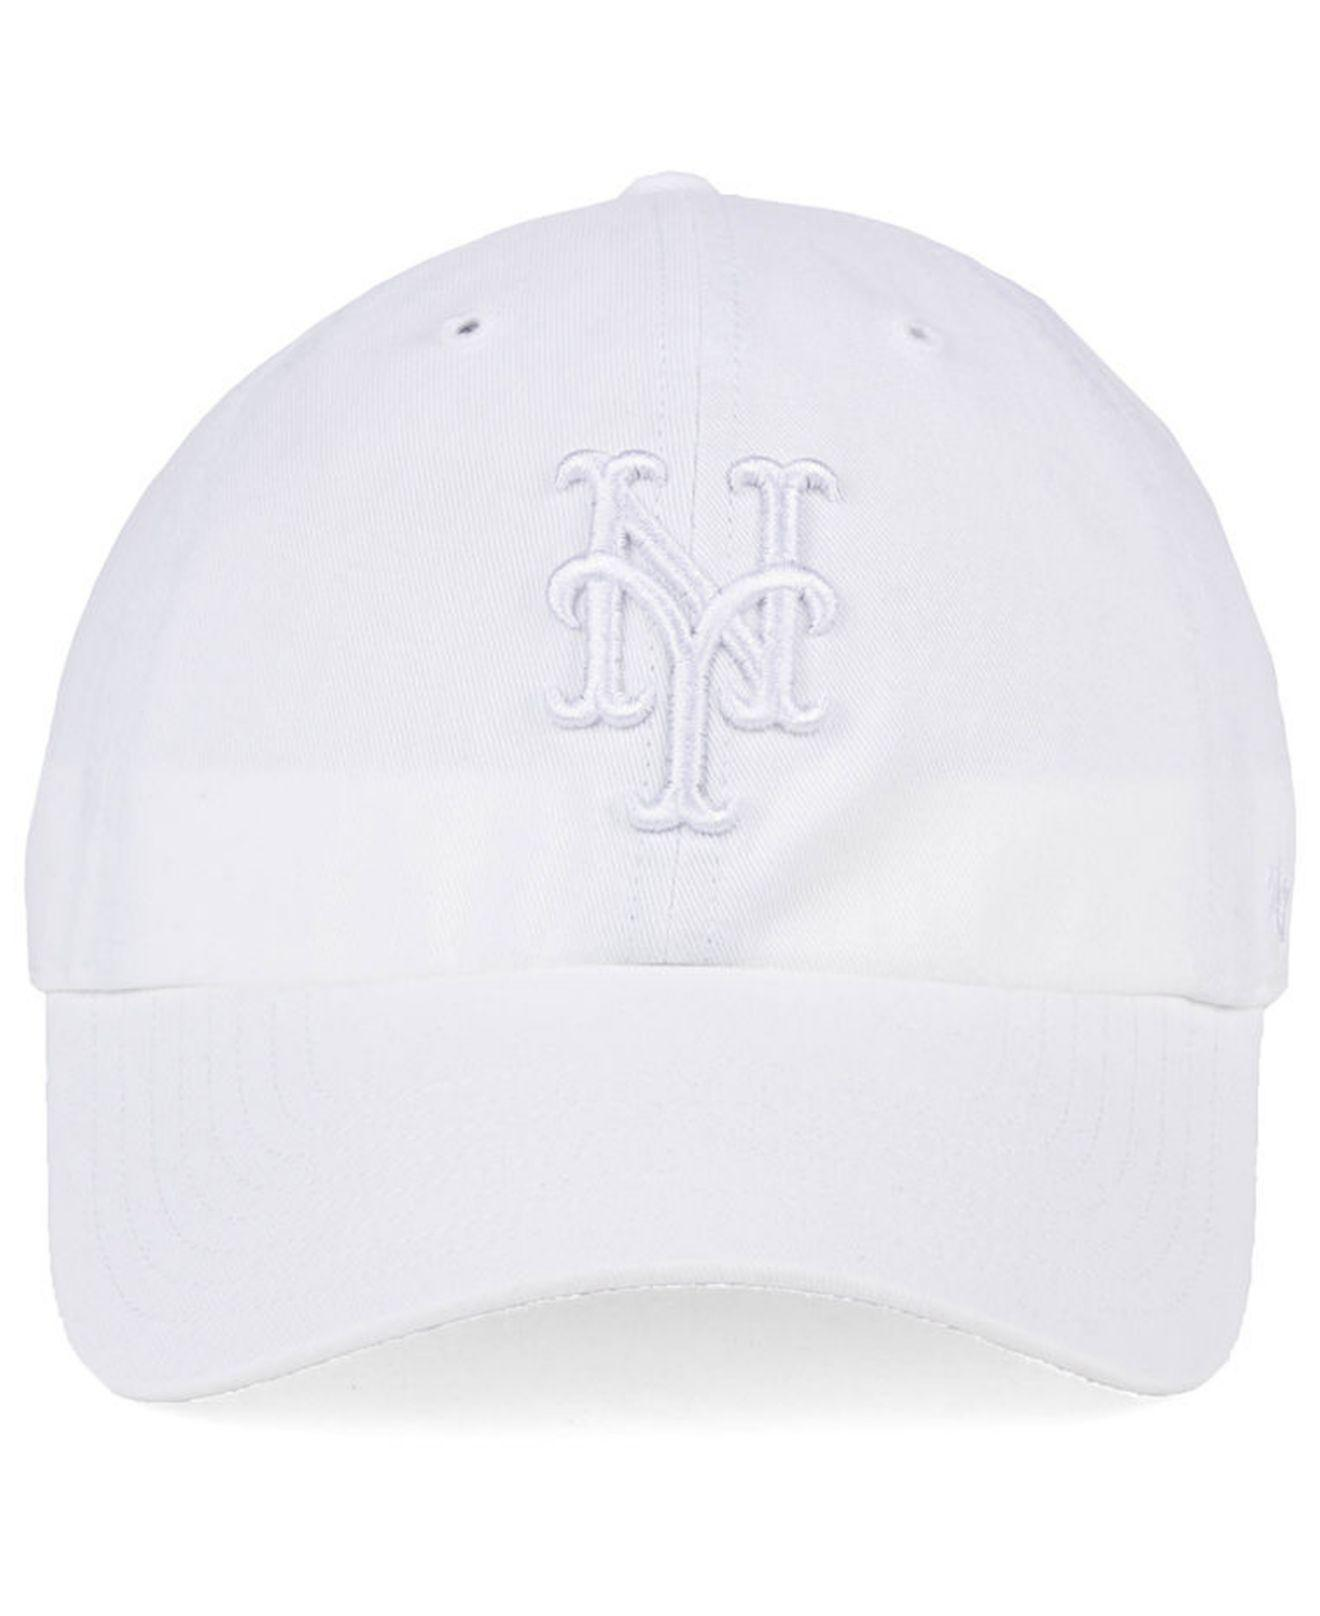 best service 19a1f 01e92 Lyst - 47 Brand New York Mets White white Clean Up Cap in White for Men